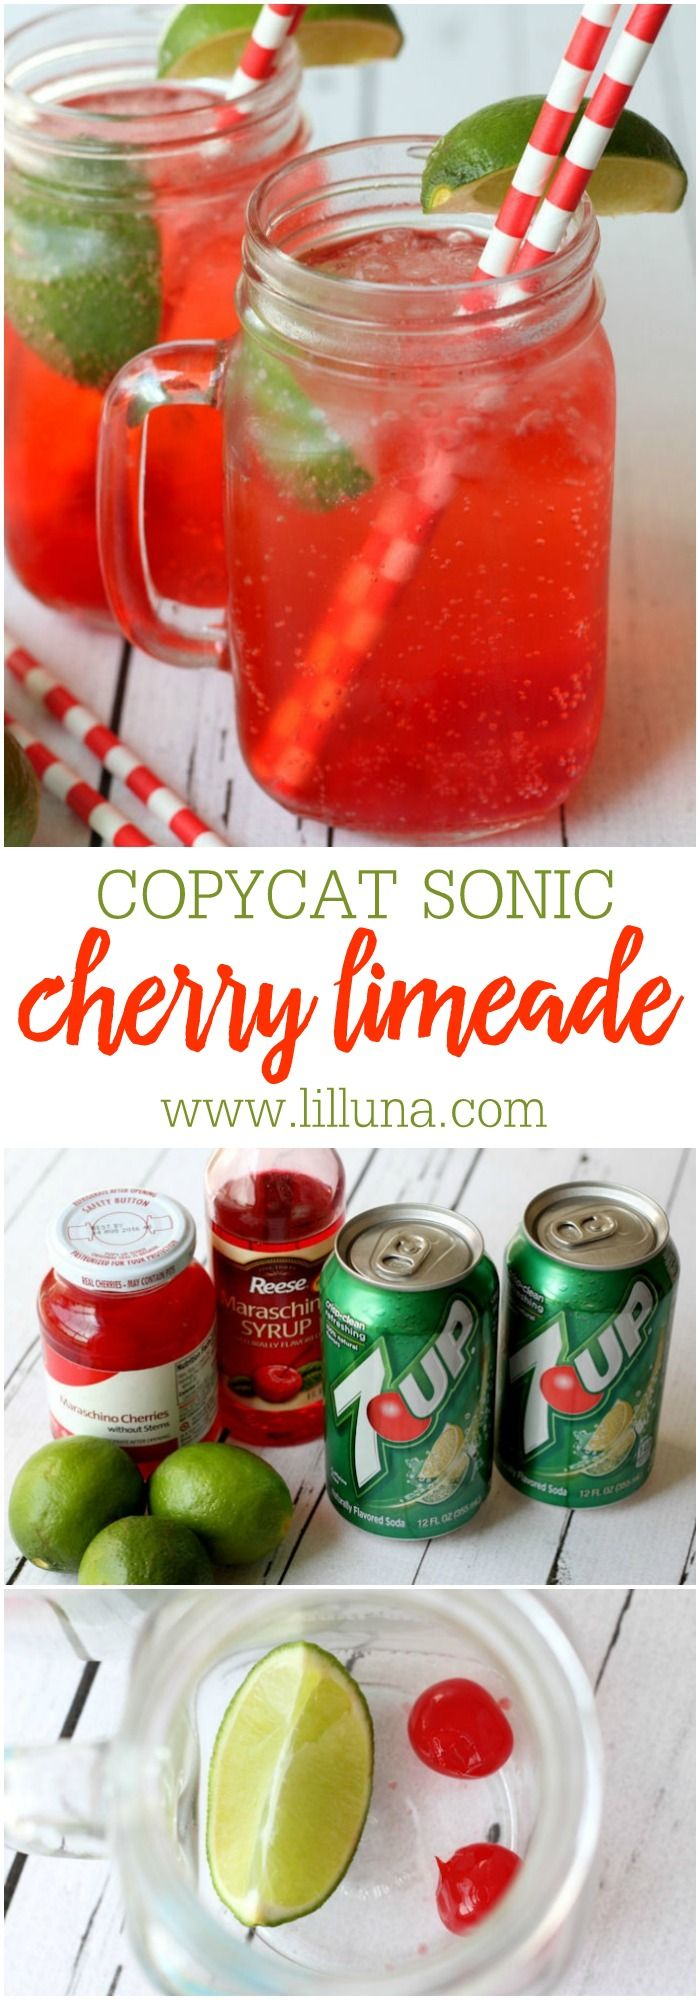 Delicious recipe for Sonic's Cherry Limeade - tastes just like it! { lilluna.com } Ingredients include 7-Up, cherries, a lime, and maraschino syrup!